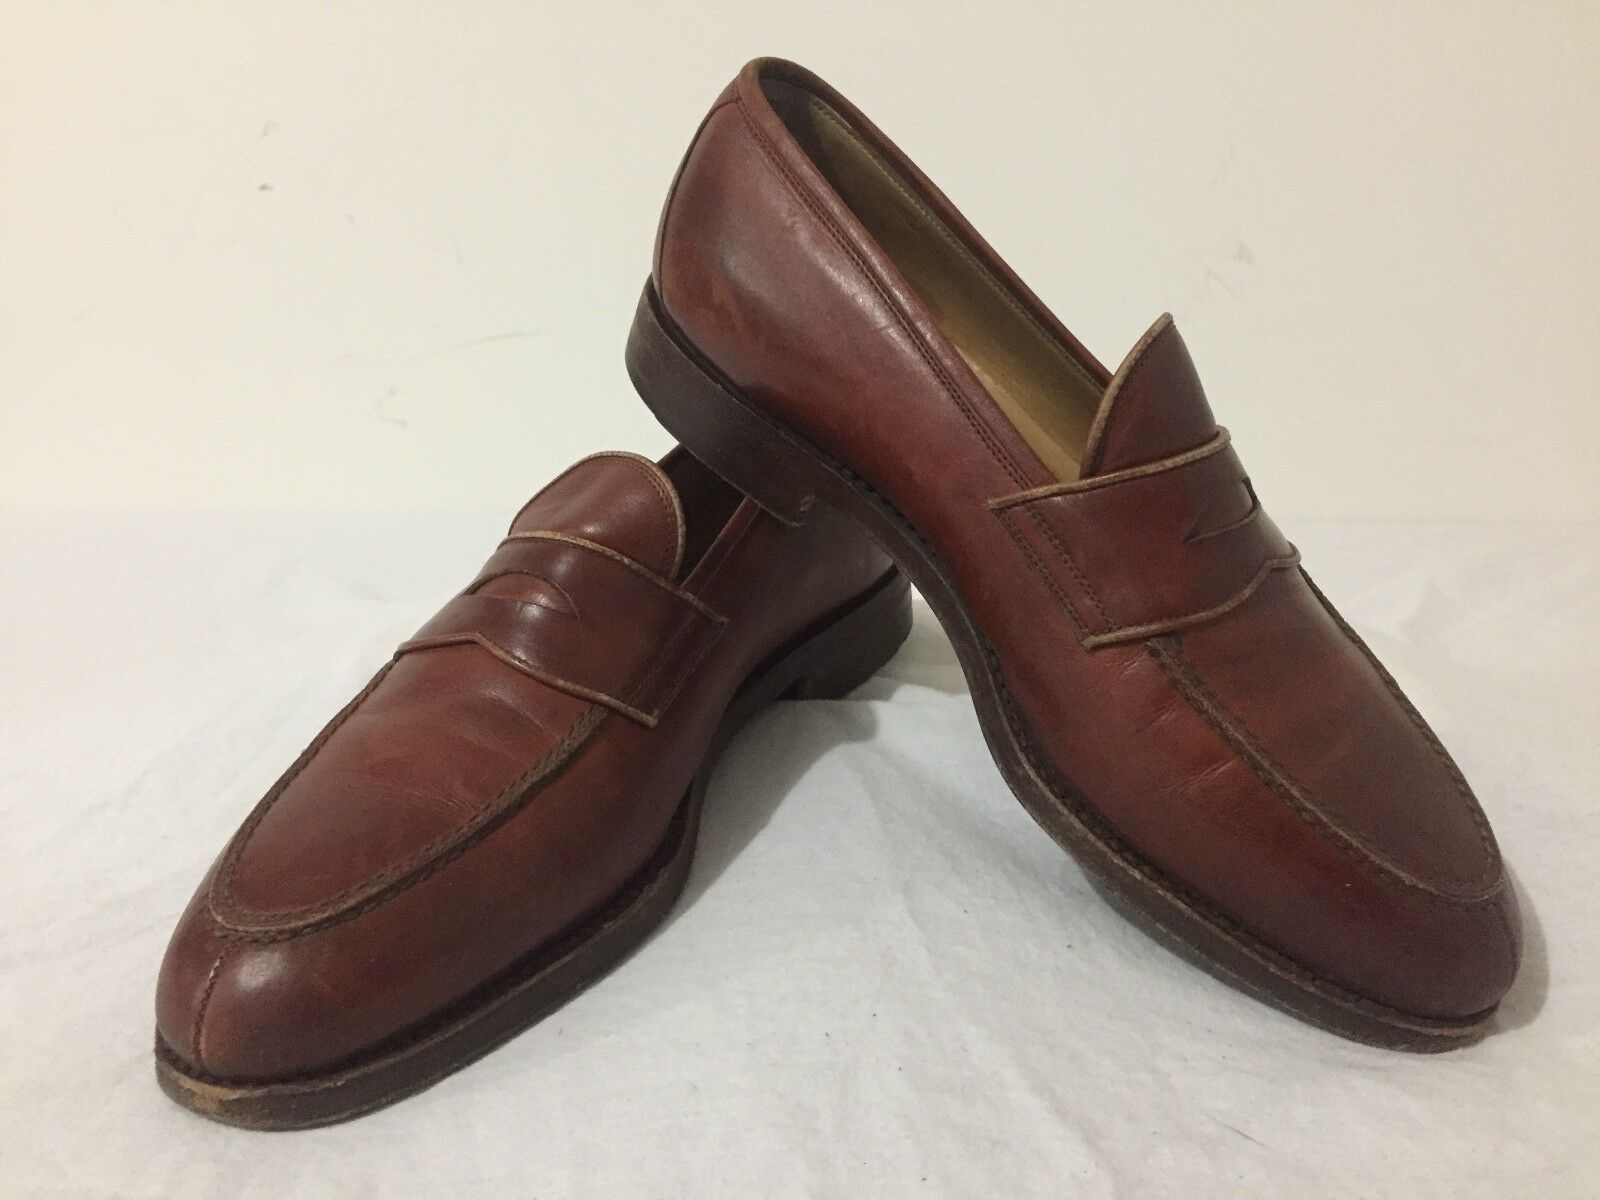 VARDA Loafers Slip On Shoes Brown Leather Men's Size 7